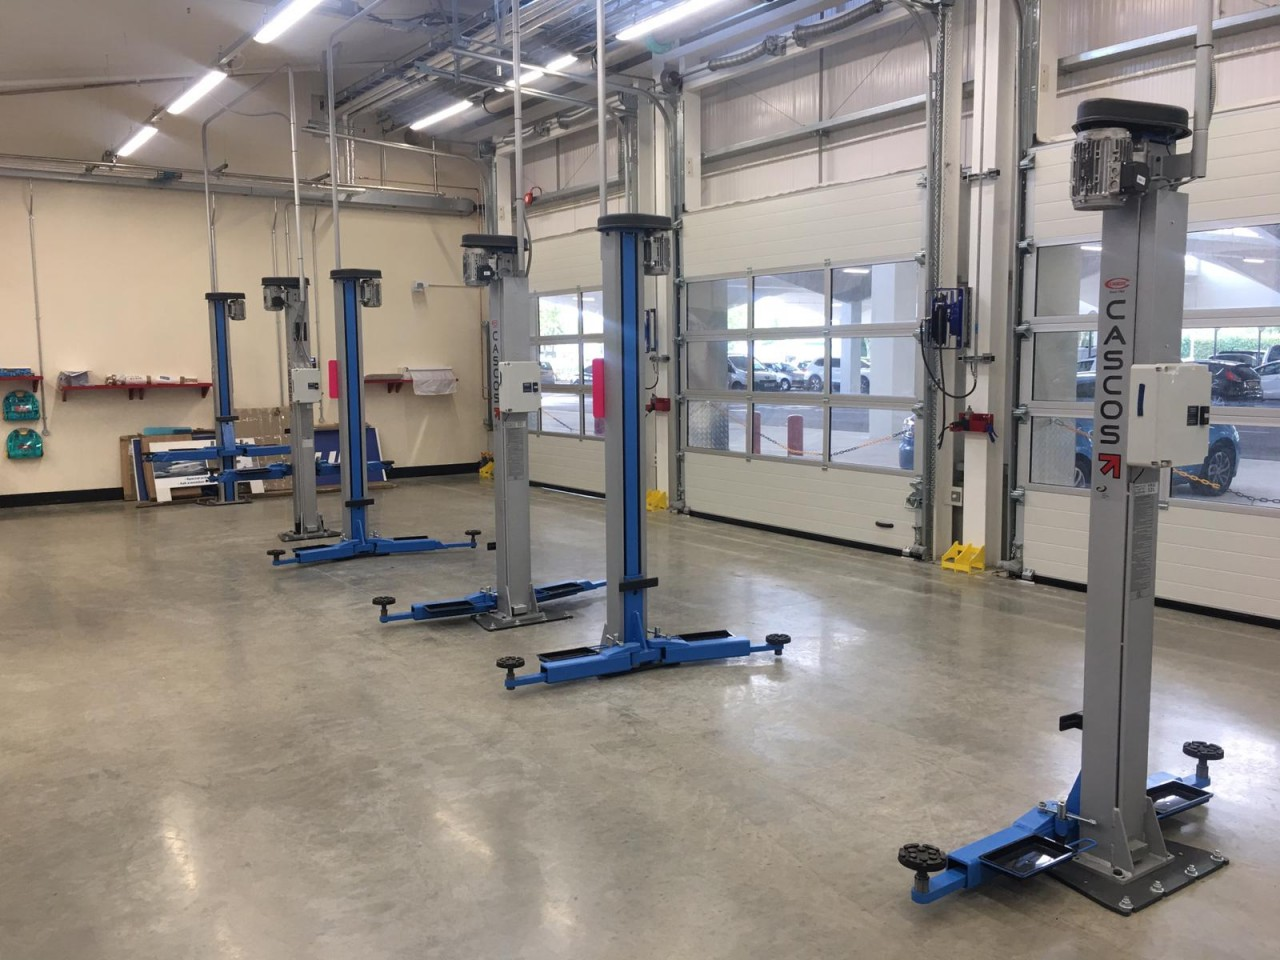 We supplied and installed two brand new 3.2 Tonne Two Post Lifts and one 4.0 Tonne Two Post Lift at Stevenage.